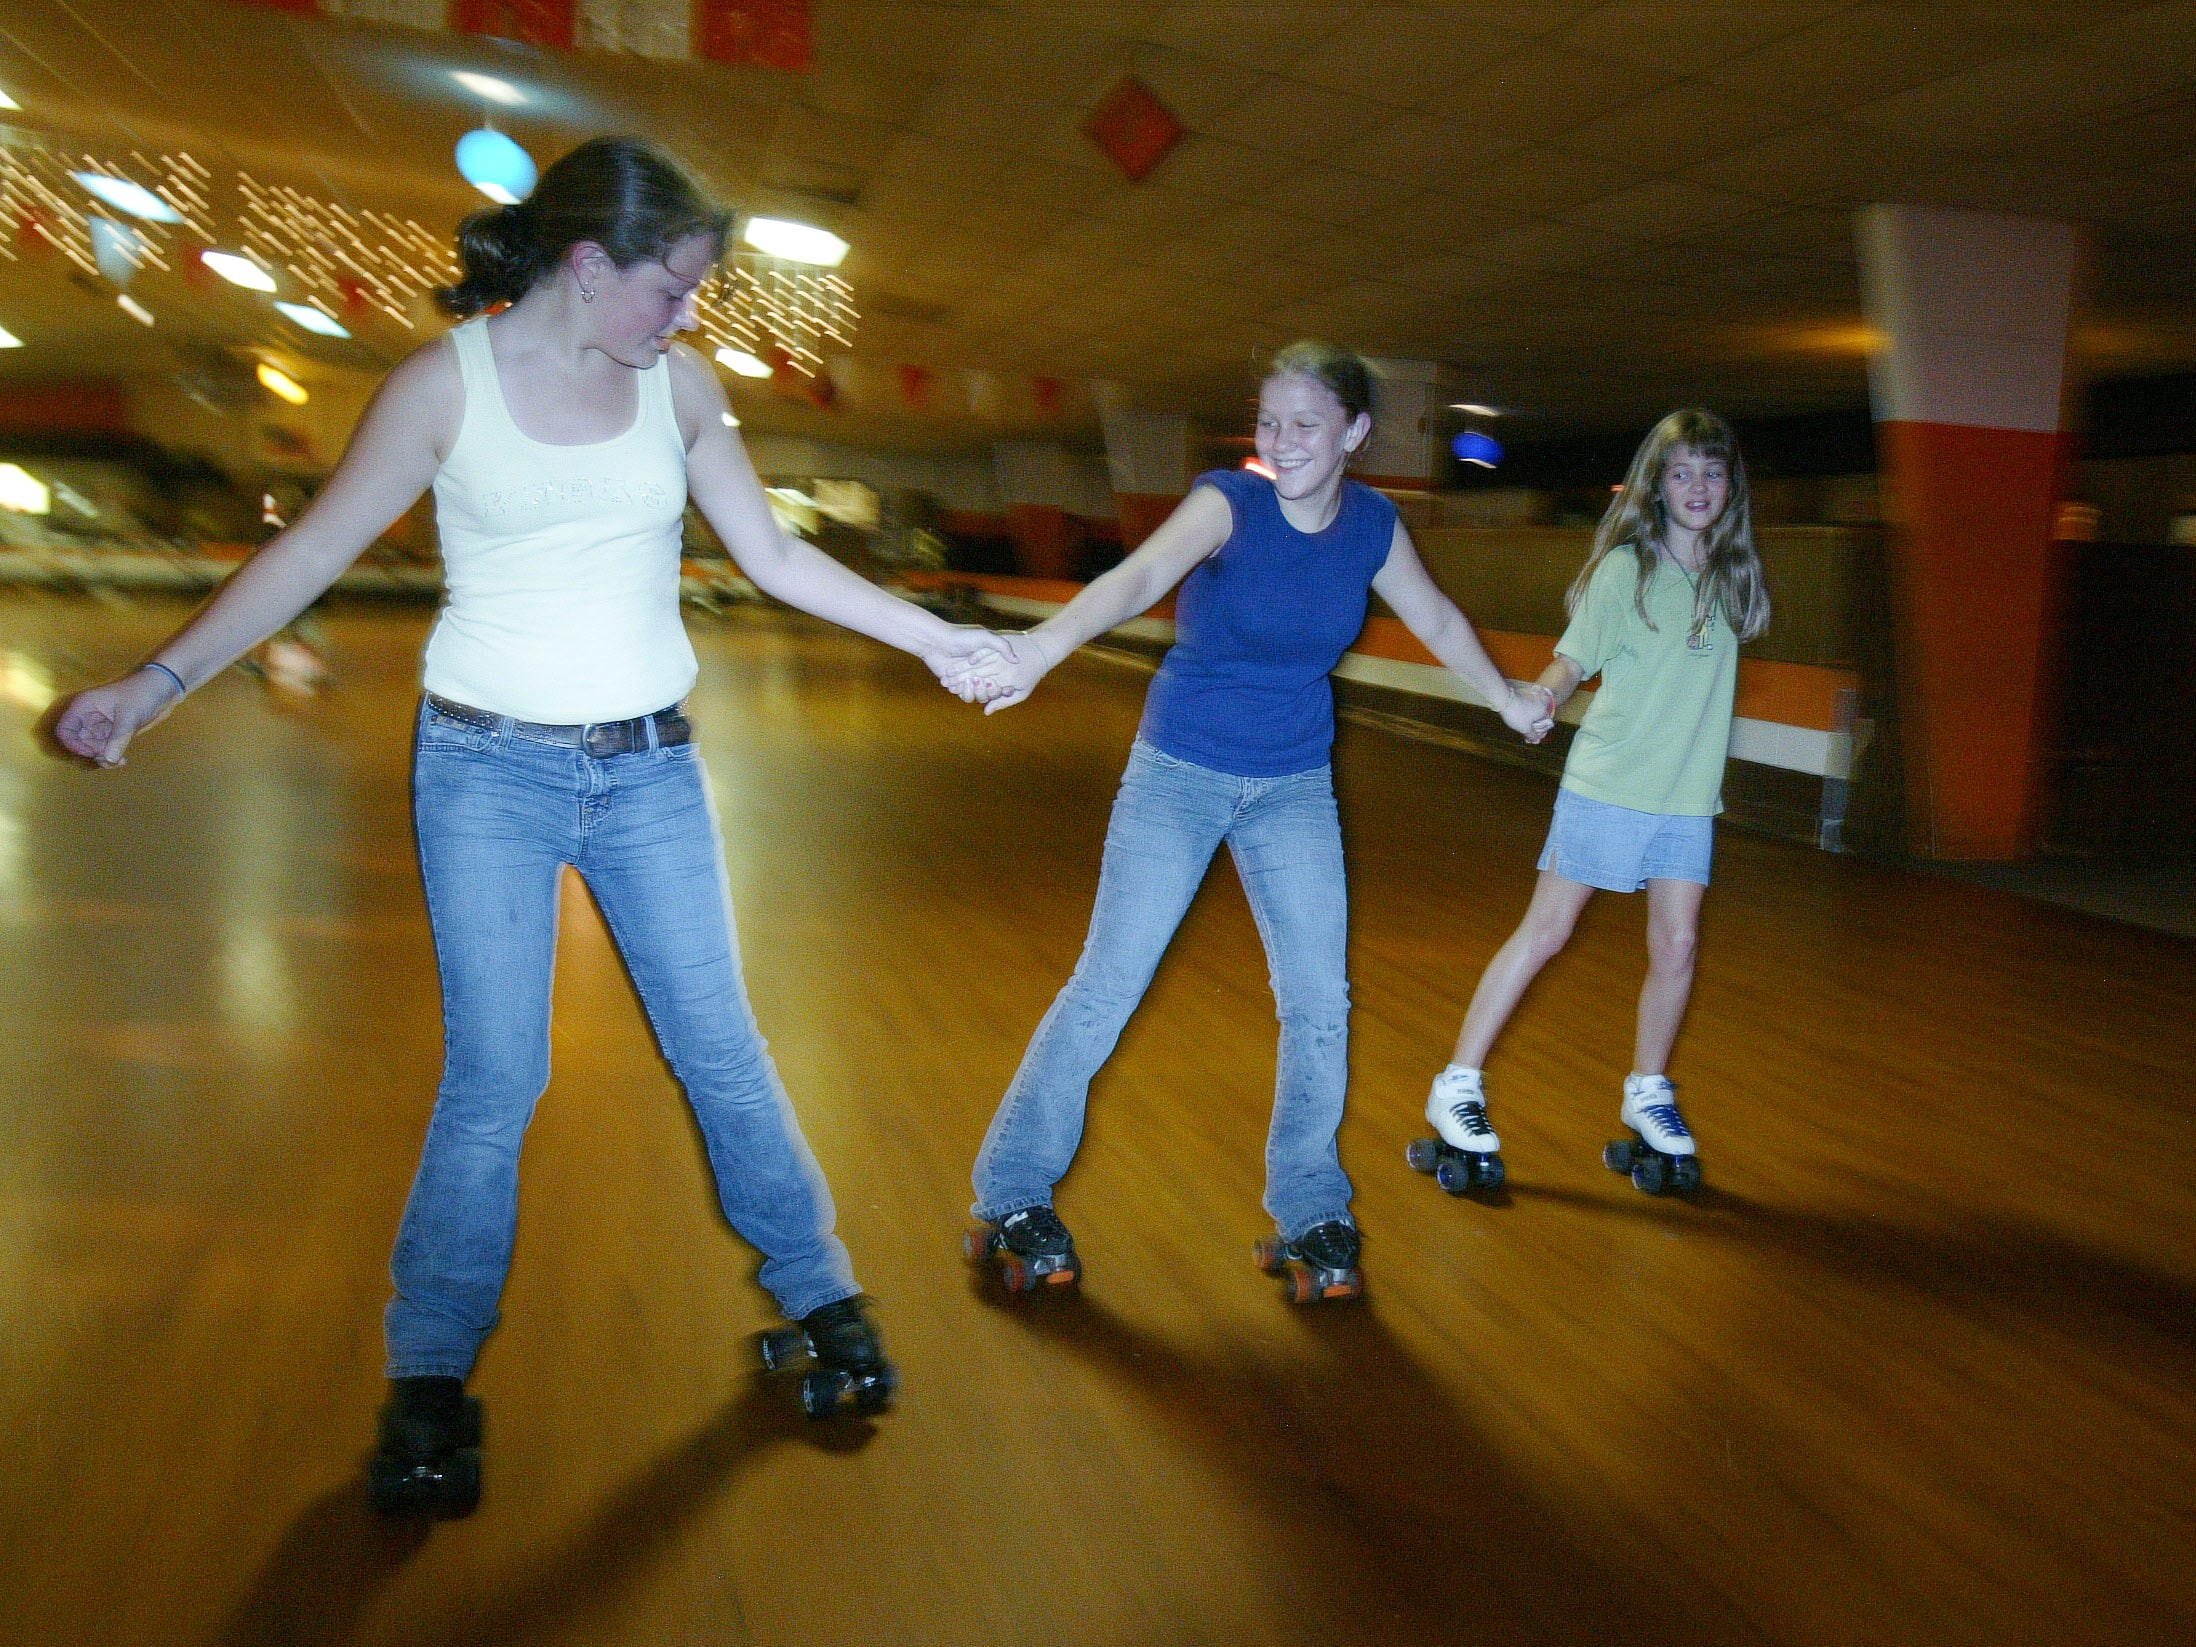 Kacy Adkins, left, Tiffany Brewer and Amanda Adkins take a spin around the roller rink at Tennessee Valley Skate Center on Chapman Highway on August 26, 2005. The family-owned skating rink closed for business on Aug. 20 after 28 years.